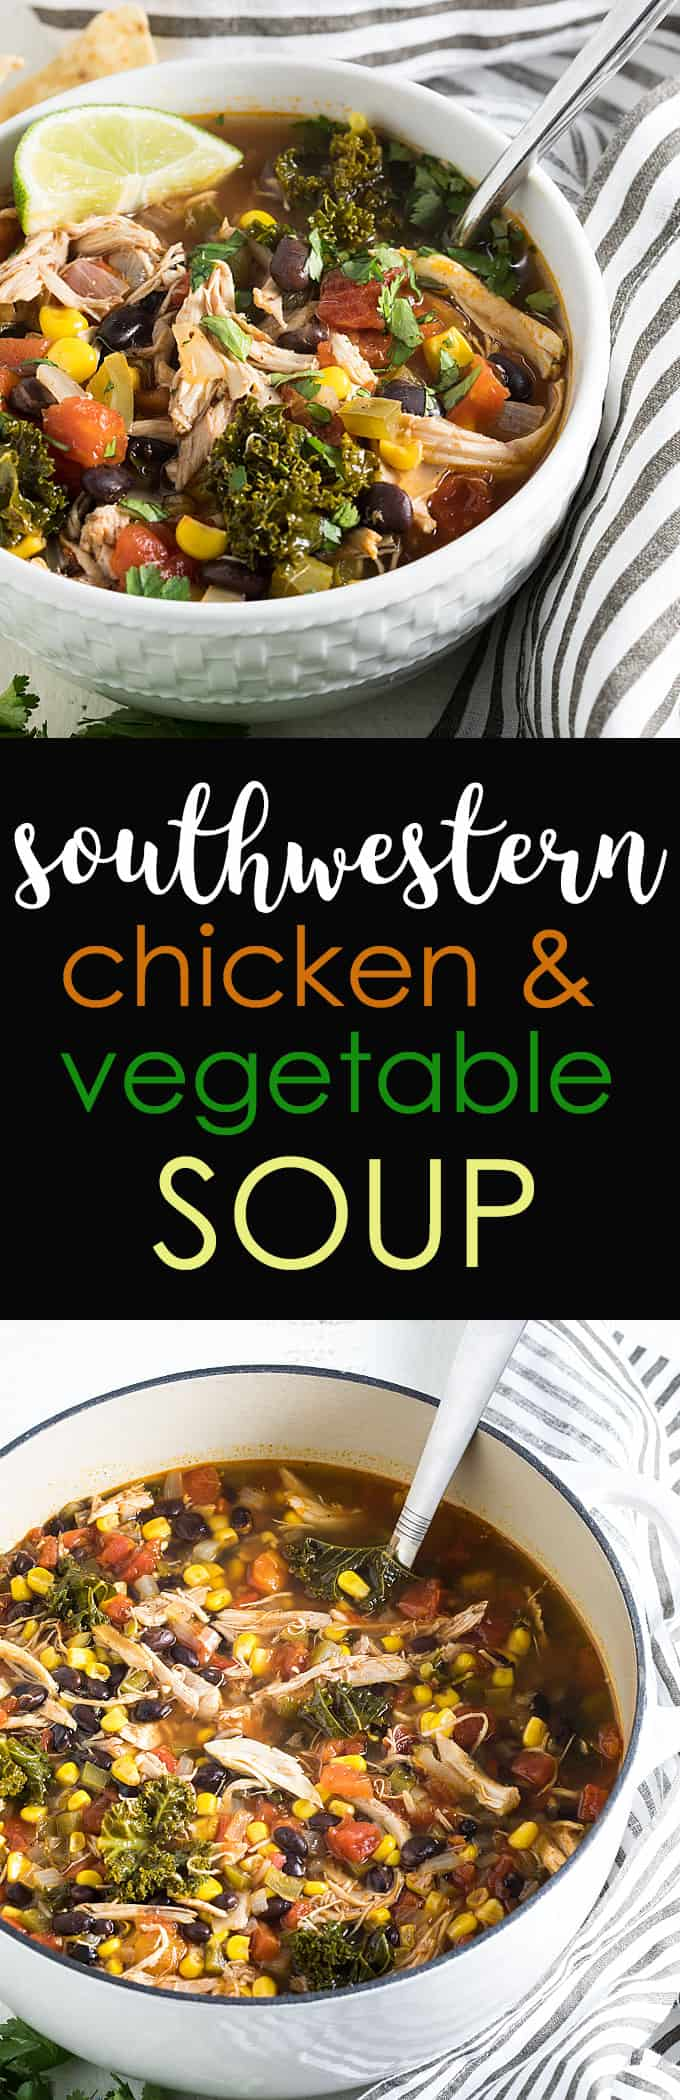 A two image vertical collage of southwestern chicken and vegetable soup with overlay text in the center.